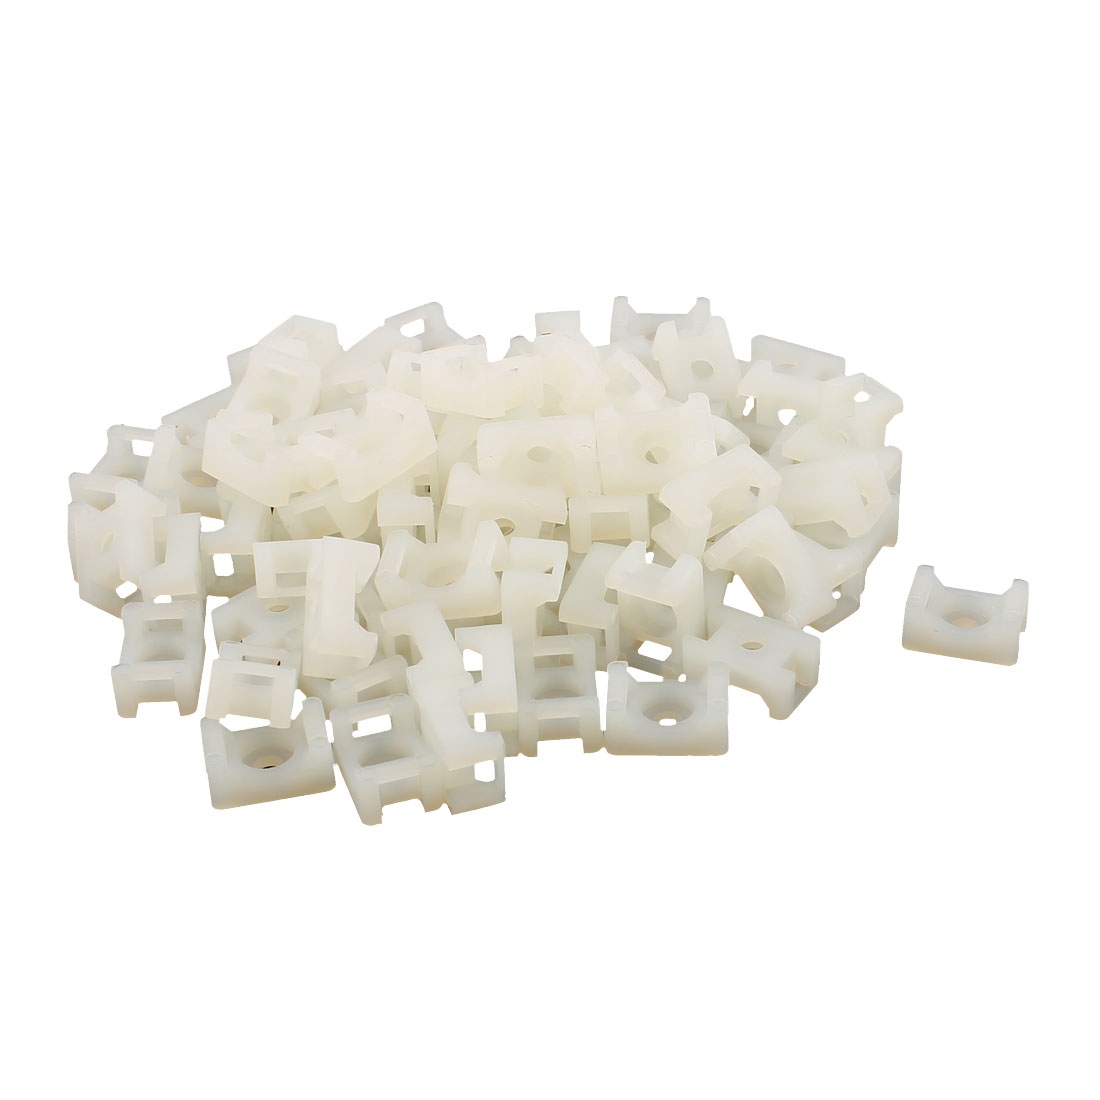 15 x 10mm Cable Tie Mount Wire Saddle Type Plastic Holder 80 Pcs White